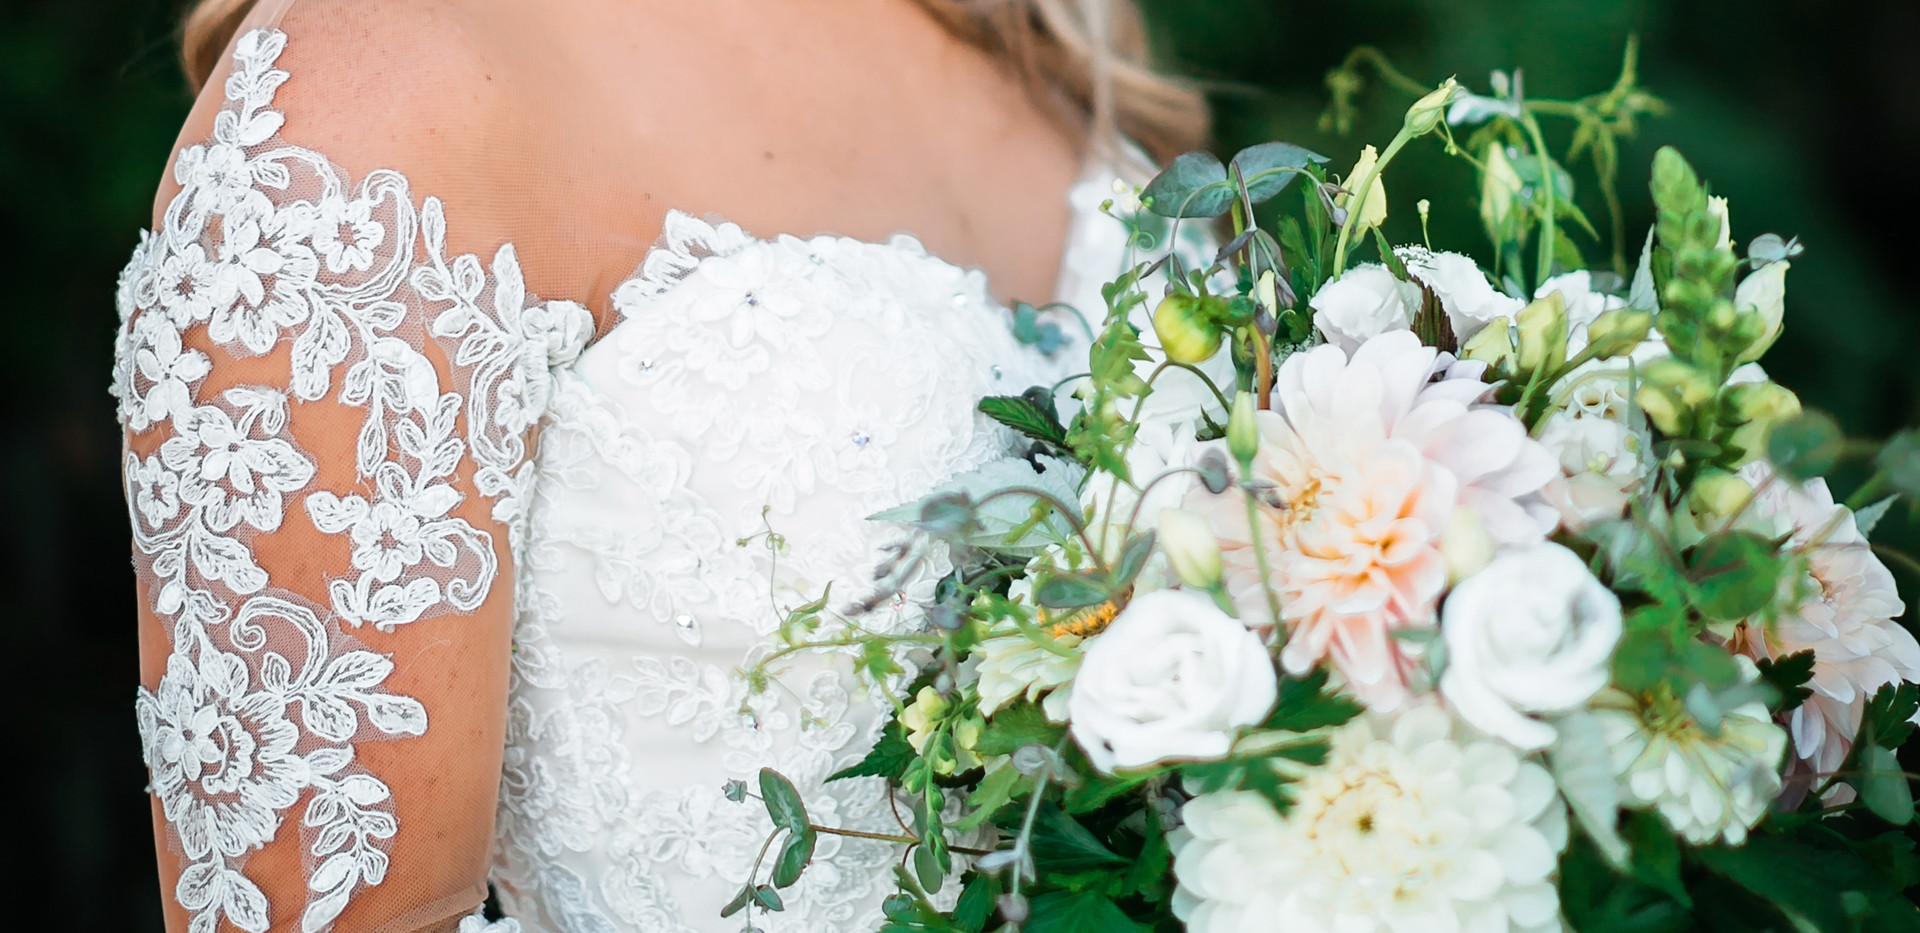 Classic Bridal Bouquet and Flower Crown. Charles and Terri's Wedding, August 2018 Photo Credit: Tallie Johnson Photography